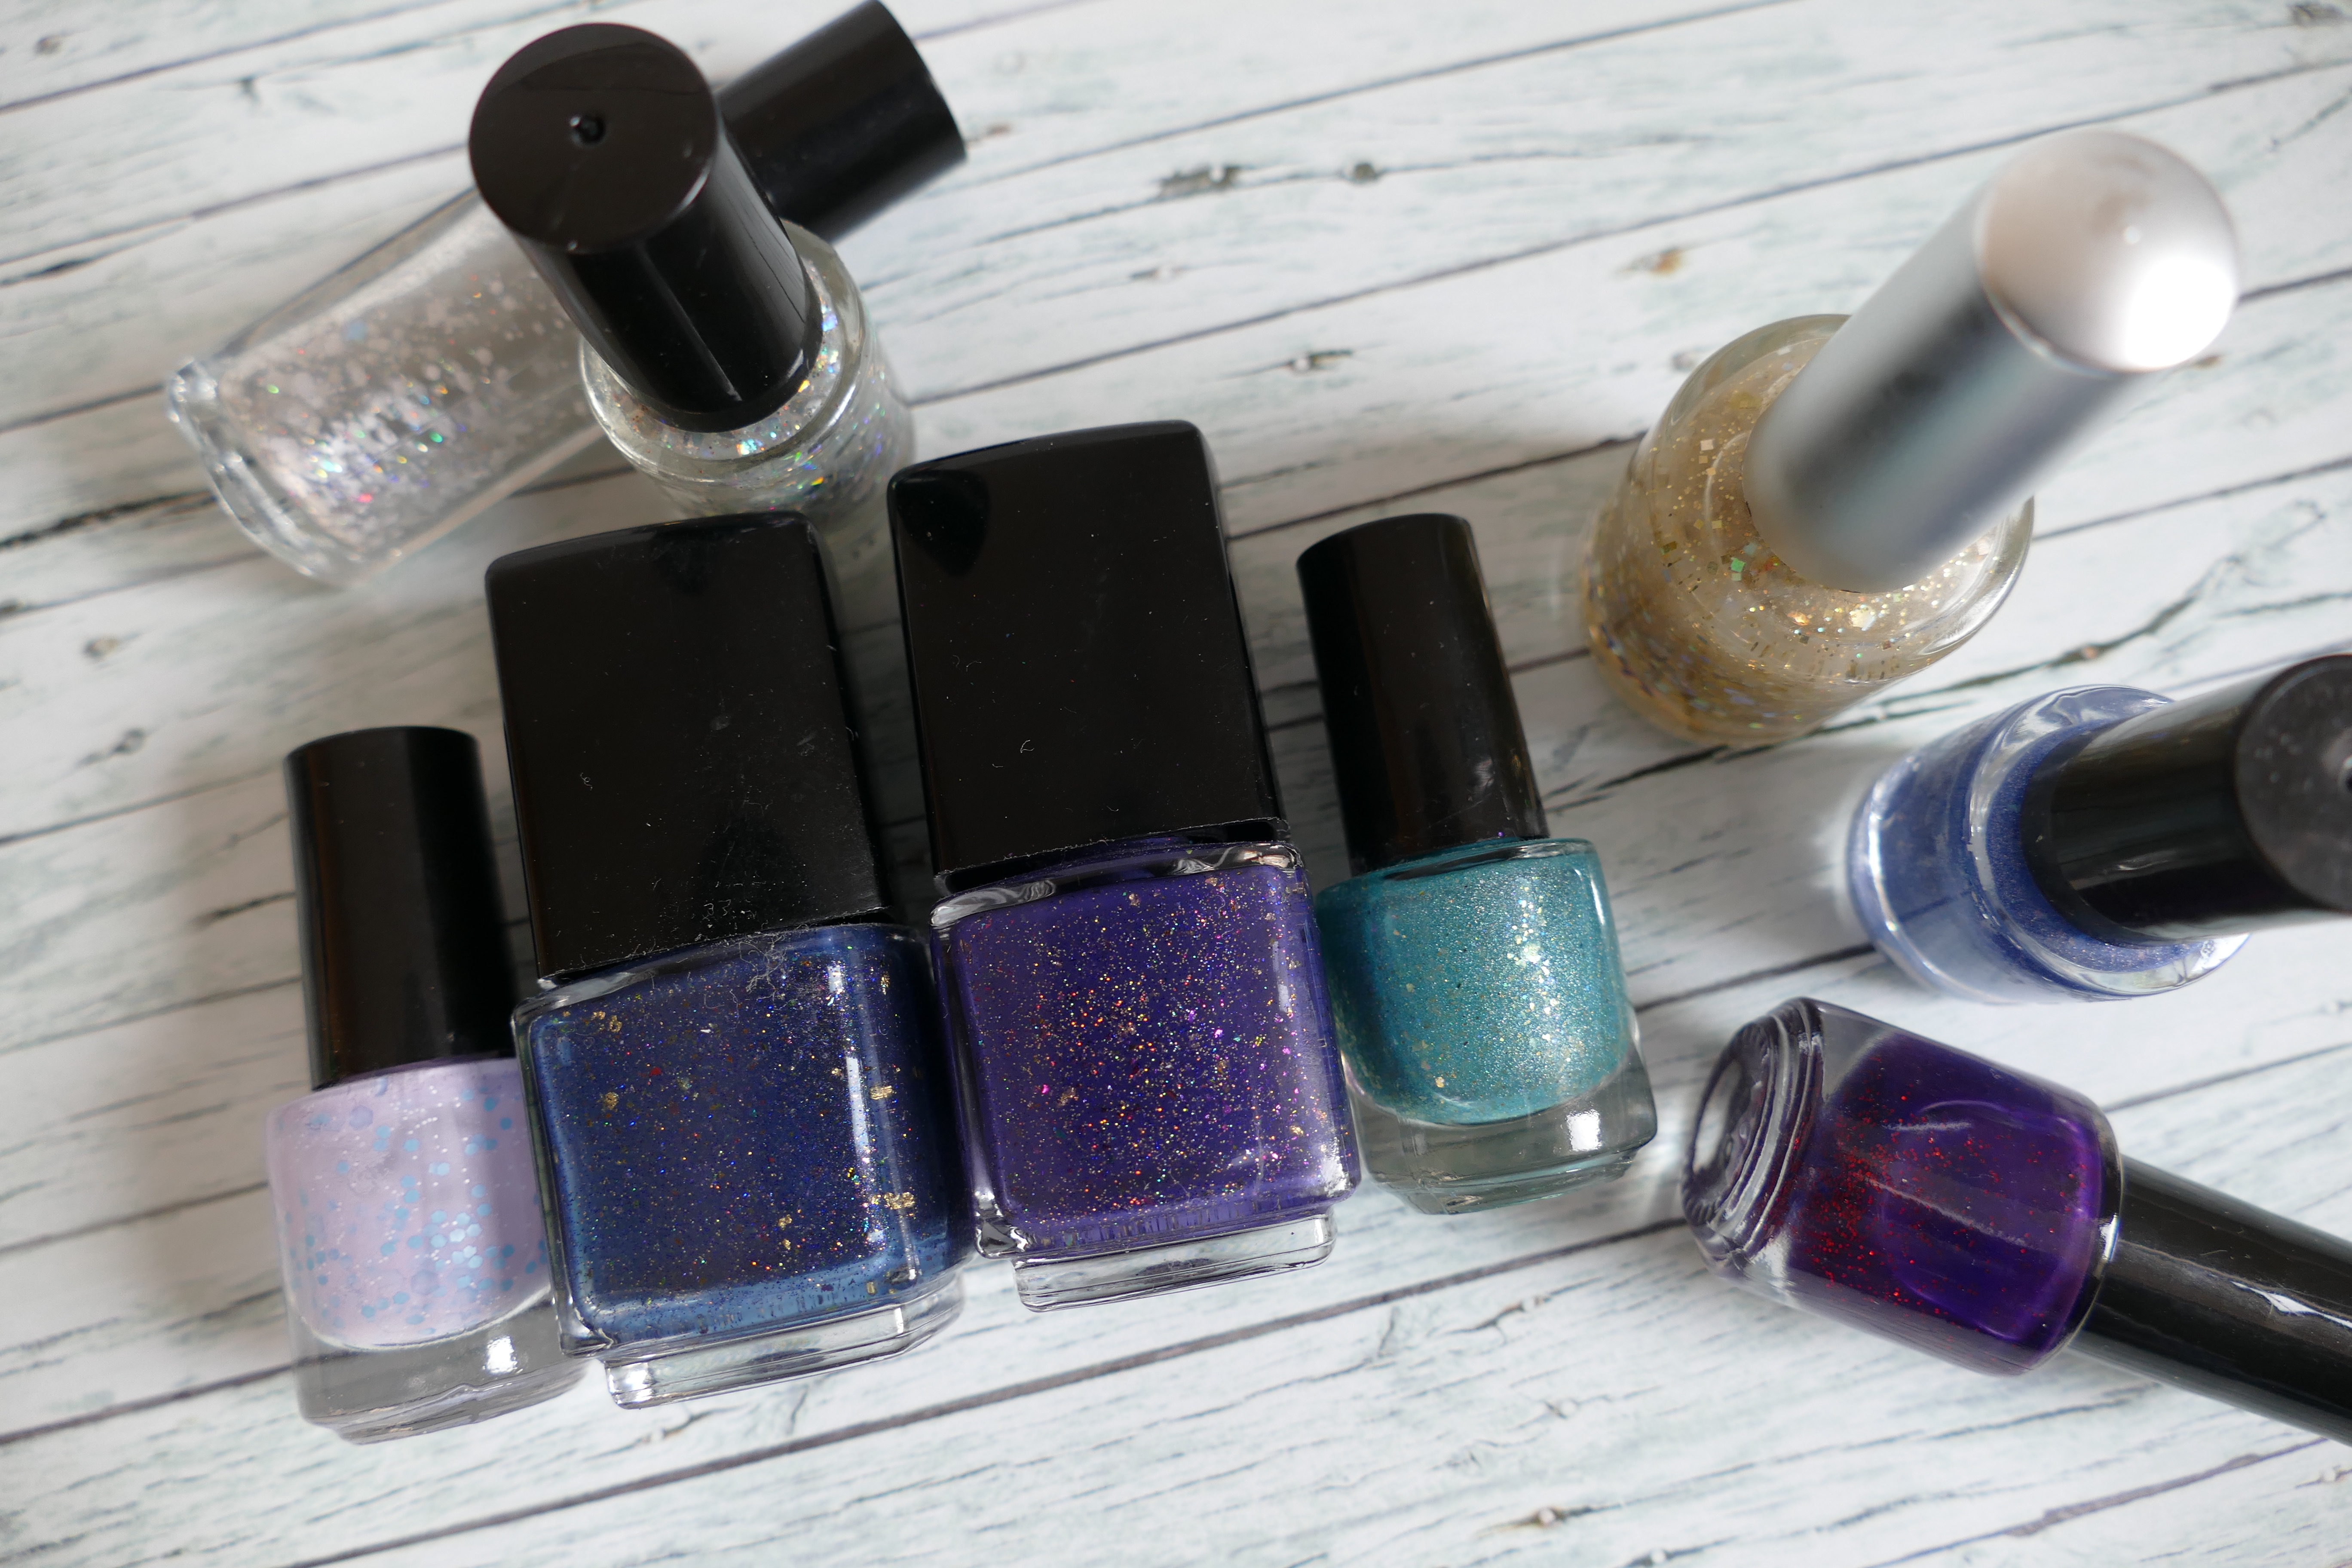 How to make your own nailpolish - twindly beauty blog